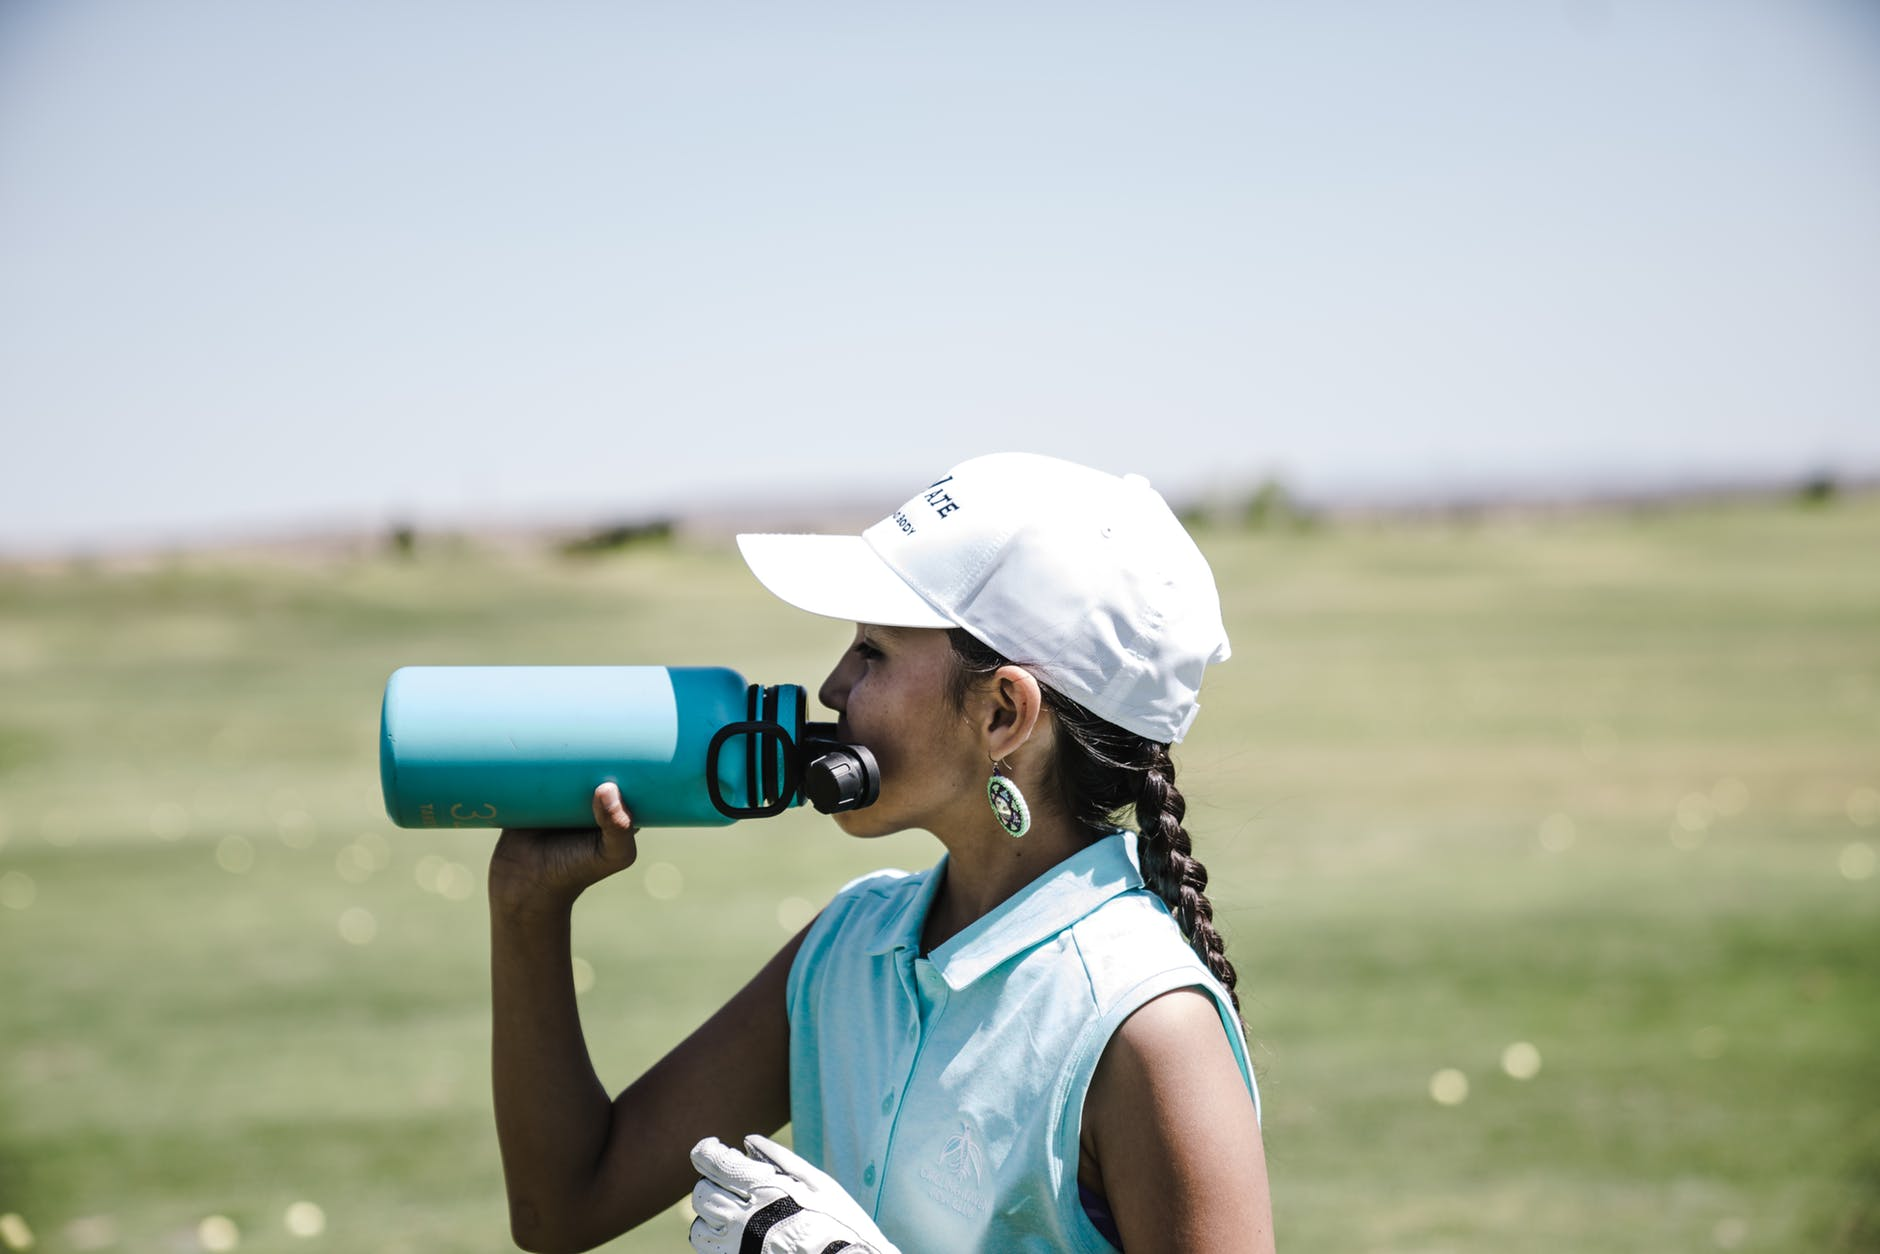 image of a golfer staying hydrated on the golf course